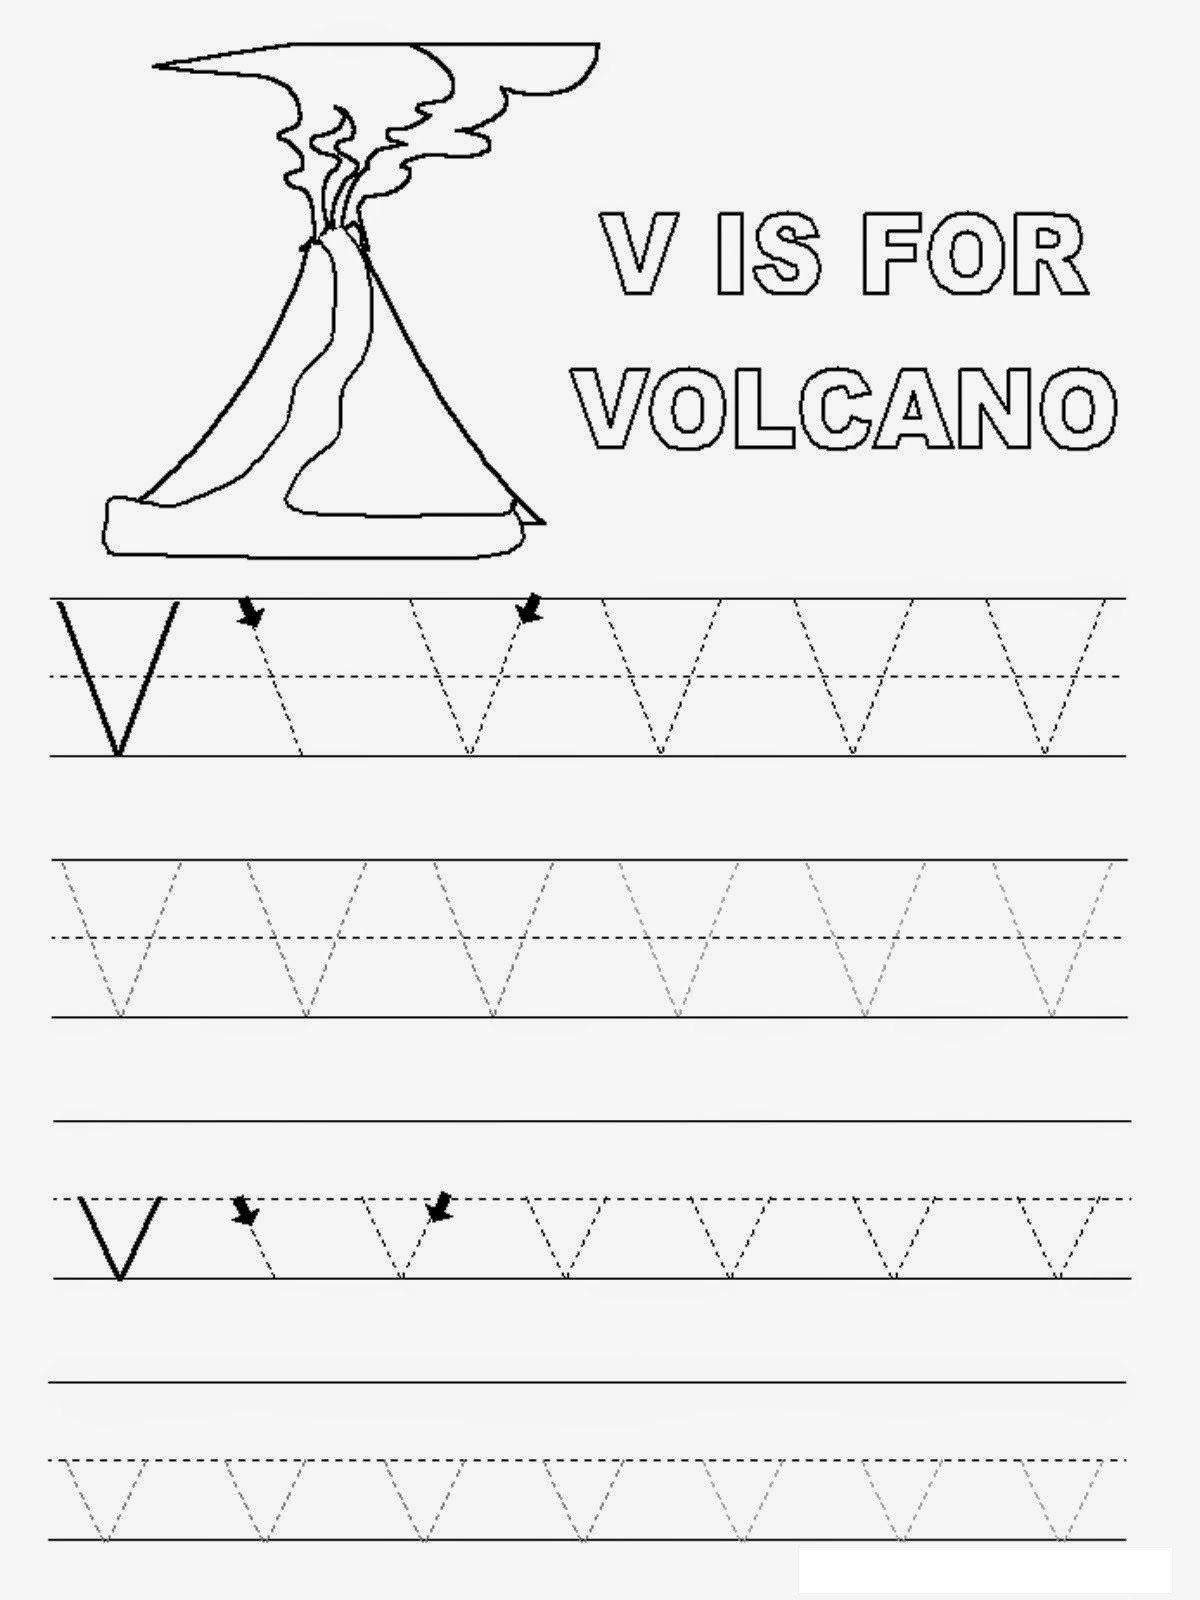 Volcano Worksheets For Kindergarten Free Printable Volcano